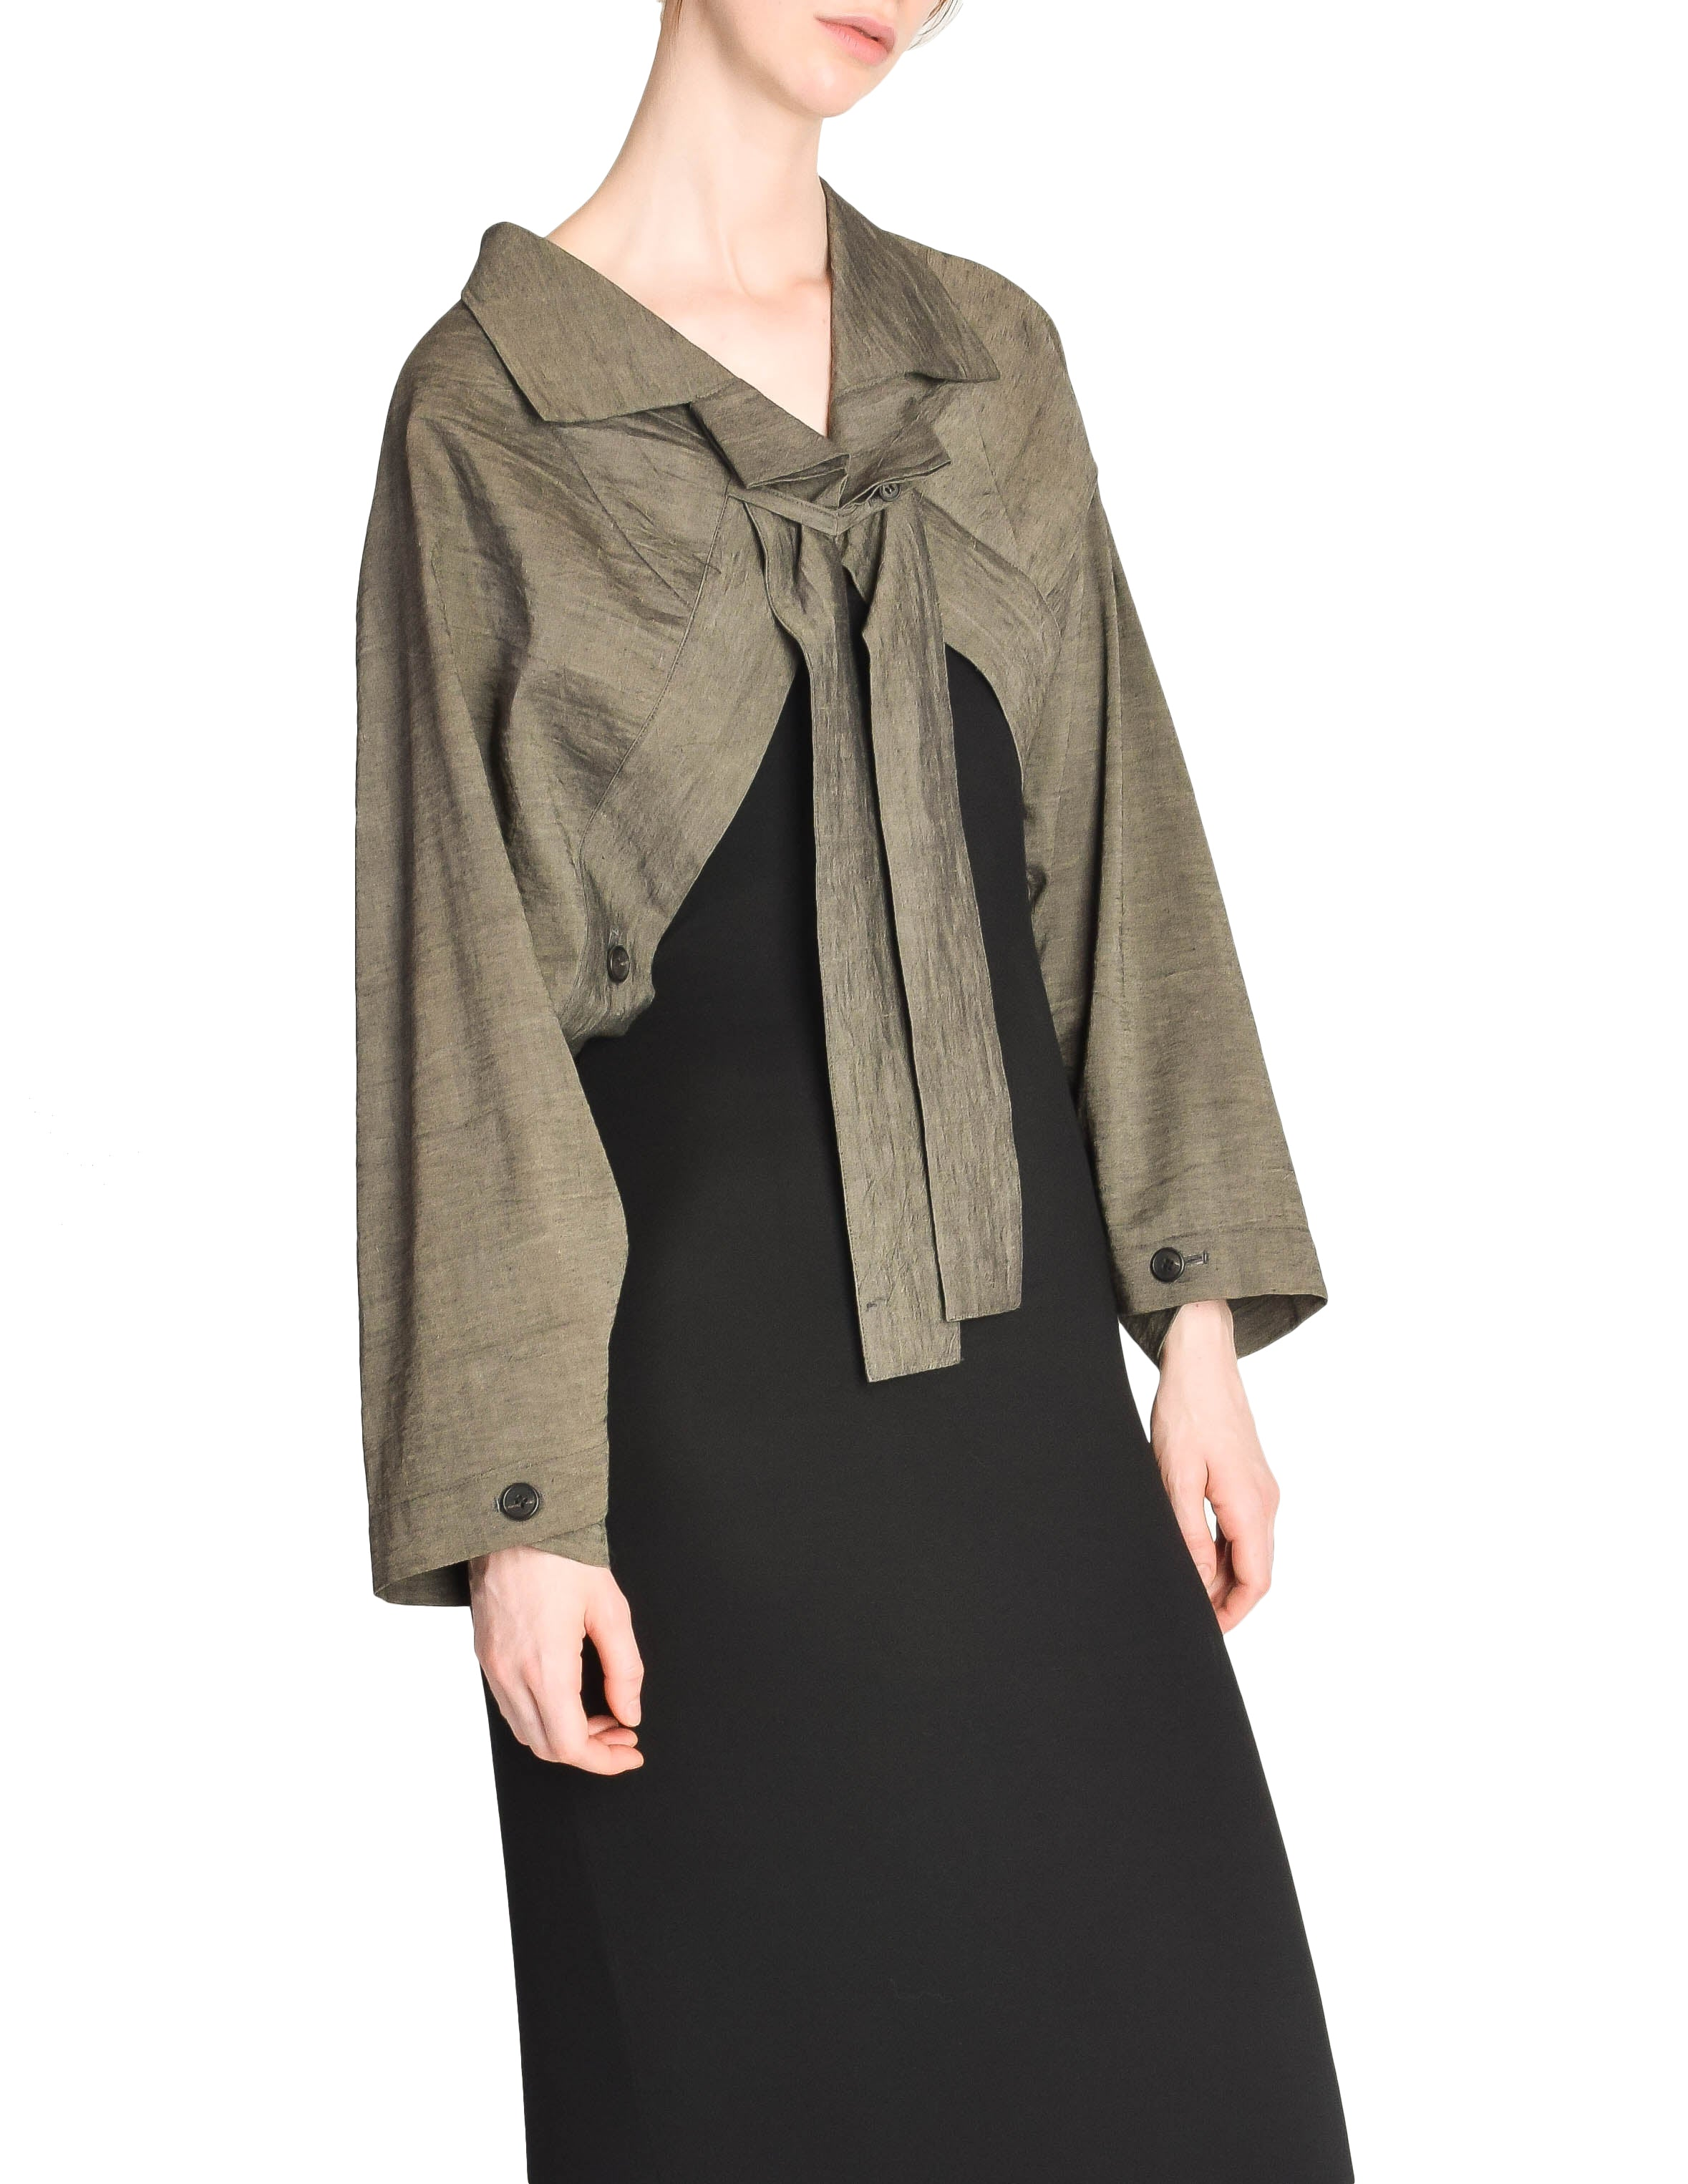 Issey Miyake Vintage Grey Chambray Linen Buttoned Cropped Shrug Bolero Jacket